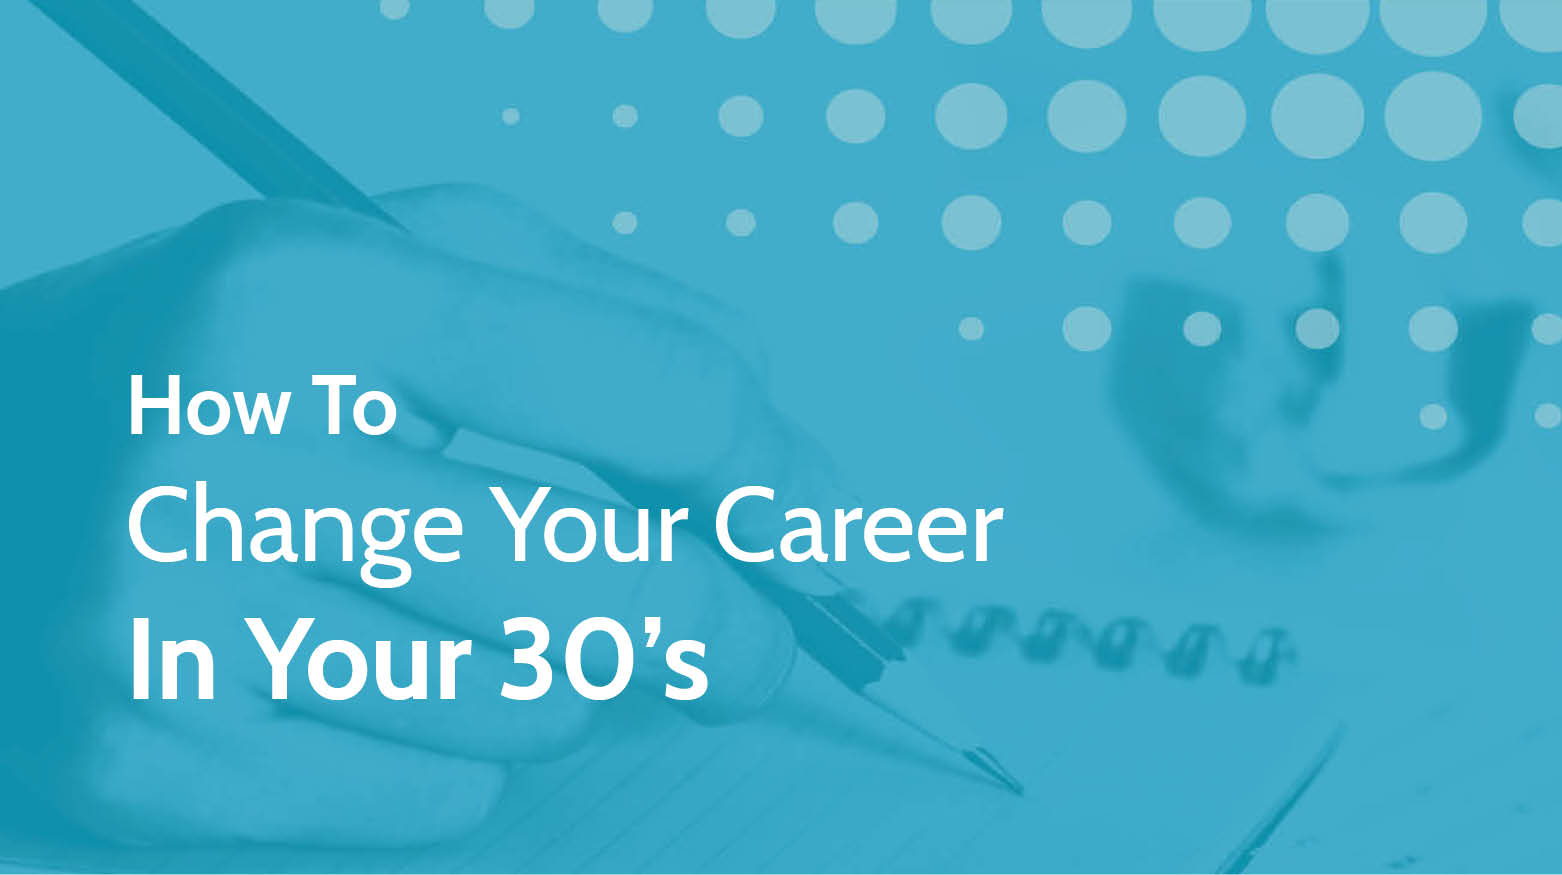 How To Change Your Career In Your 30's